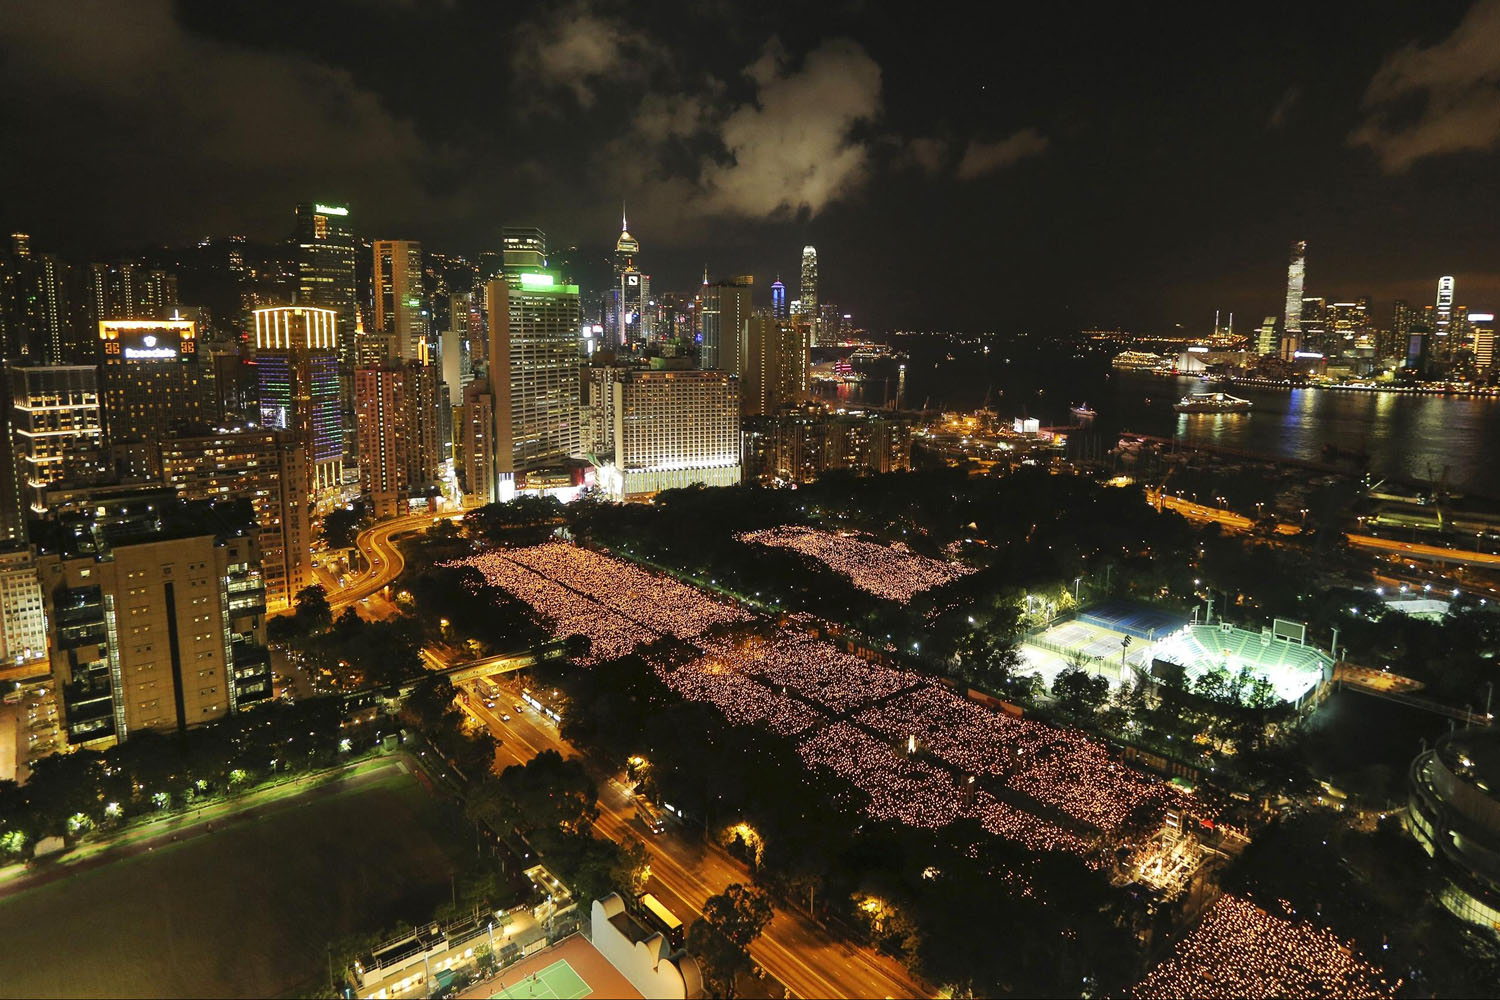 June 4, 2014. Tens of thousands of people participate in a candlelight vigil at Hong Kong's Victoria Park  to mark the 25th anniversary of the military crackdown of the pro-democracy movement at Beijing's Tiananmen Square in 1989.